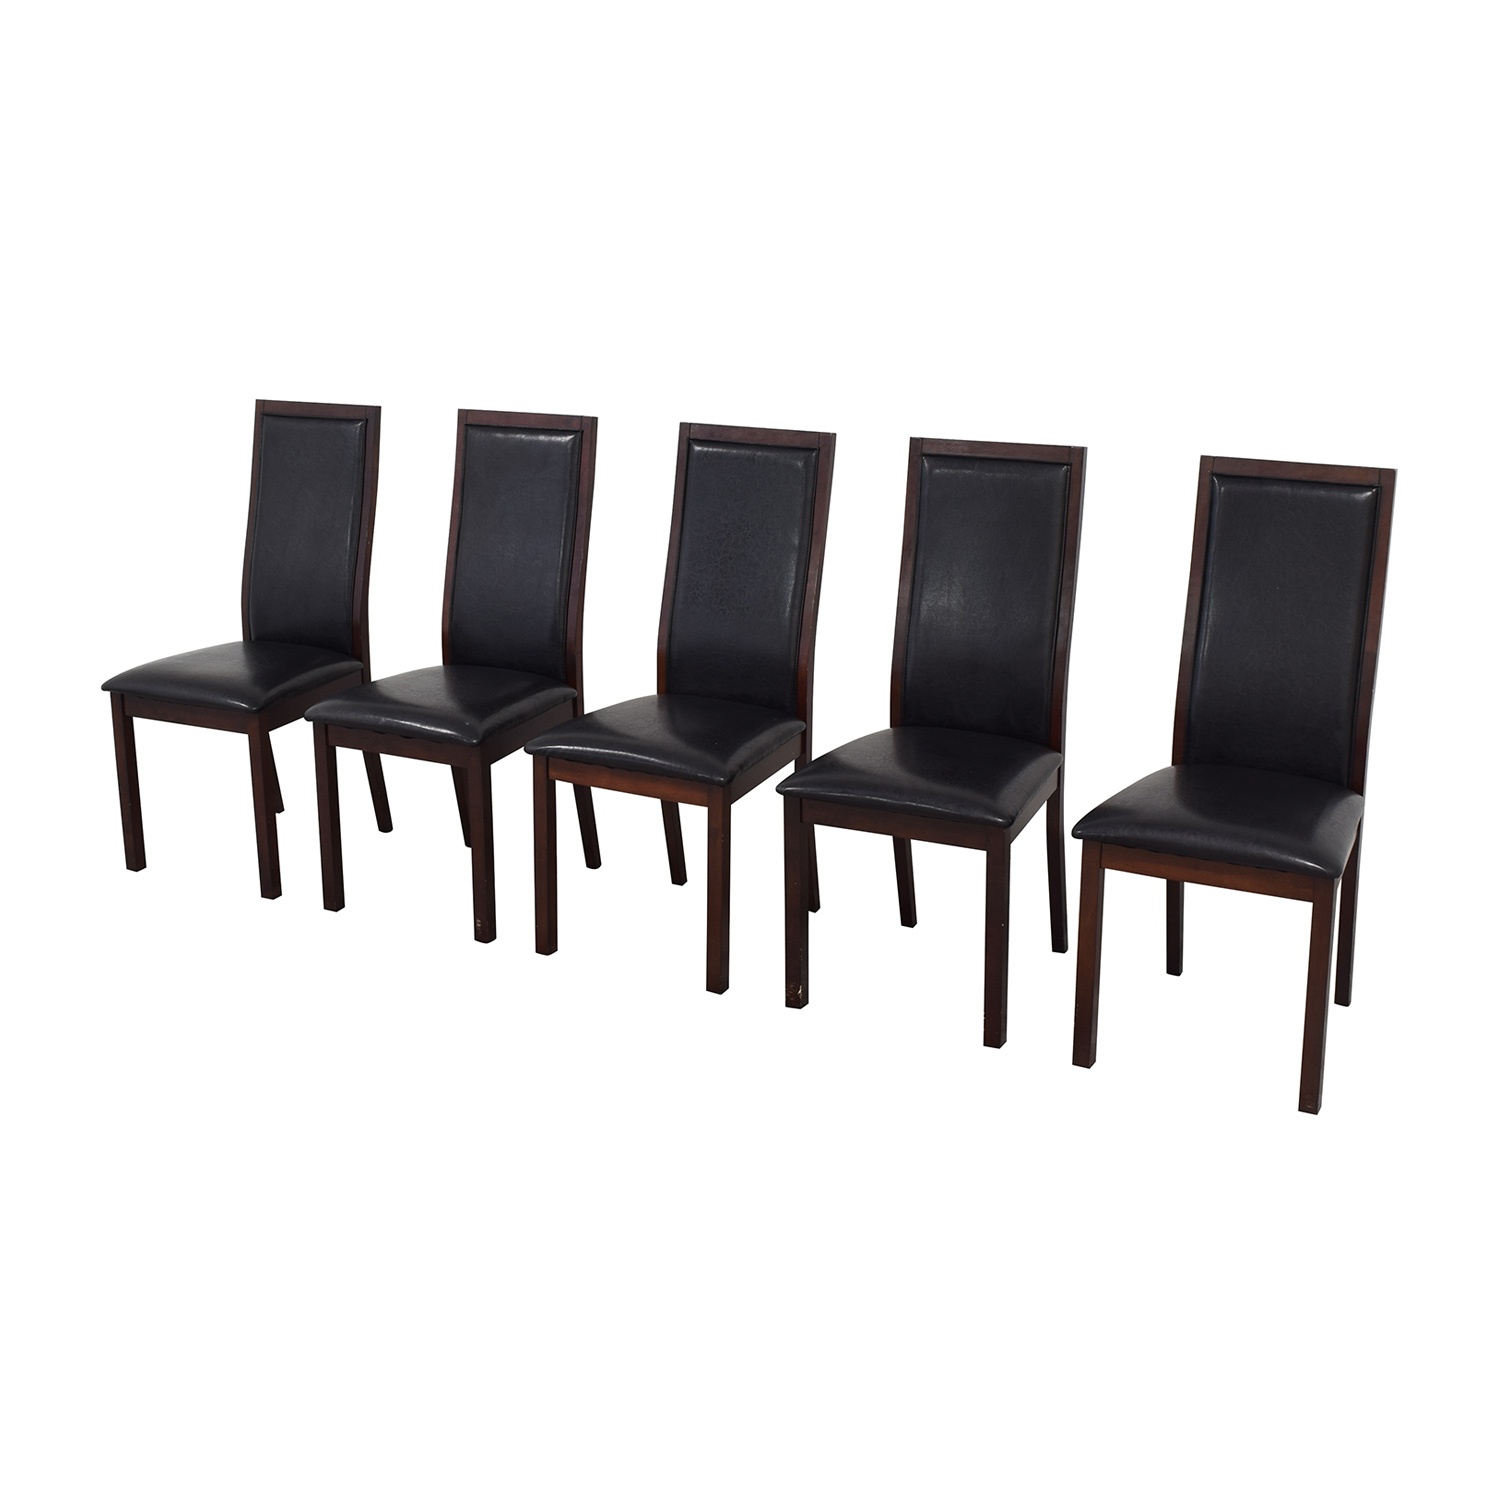 Coaster Fine Furniture Coaster Dining Chairs for sale